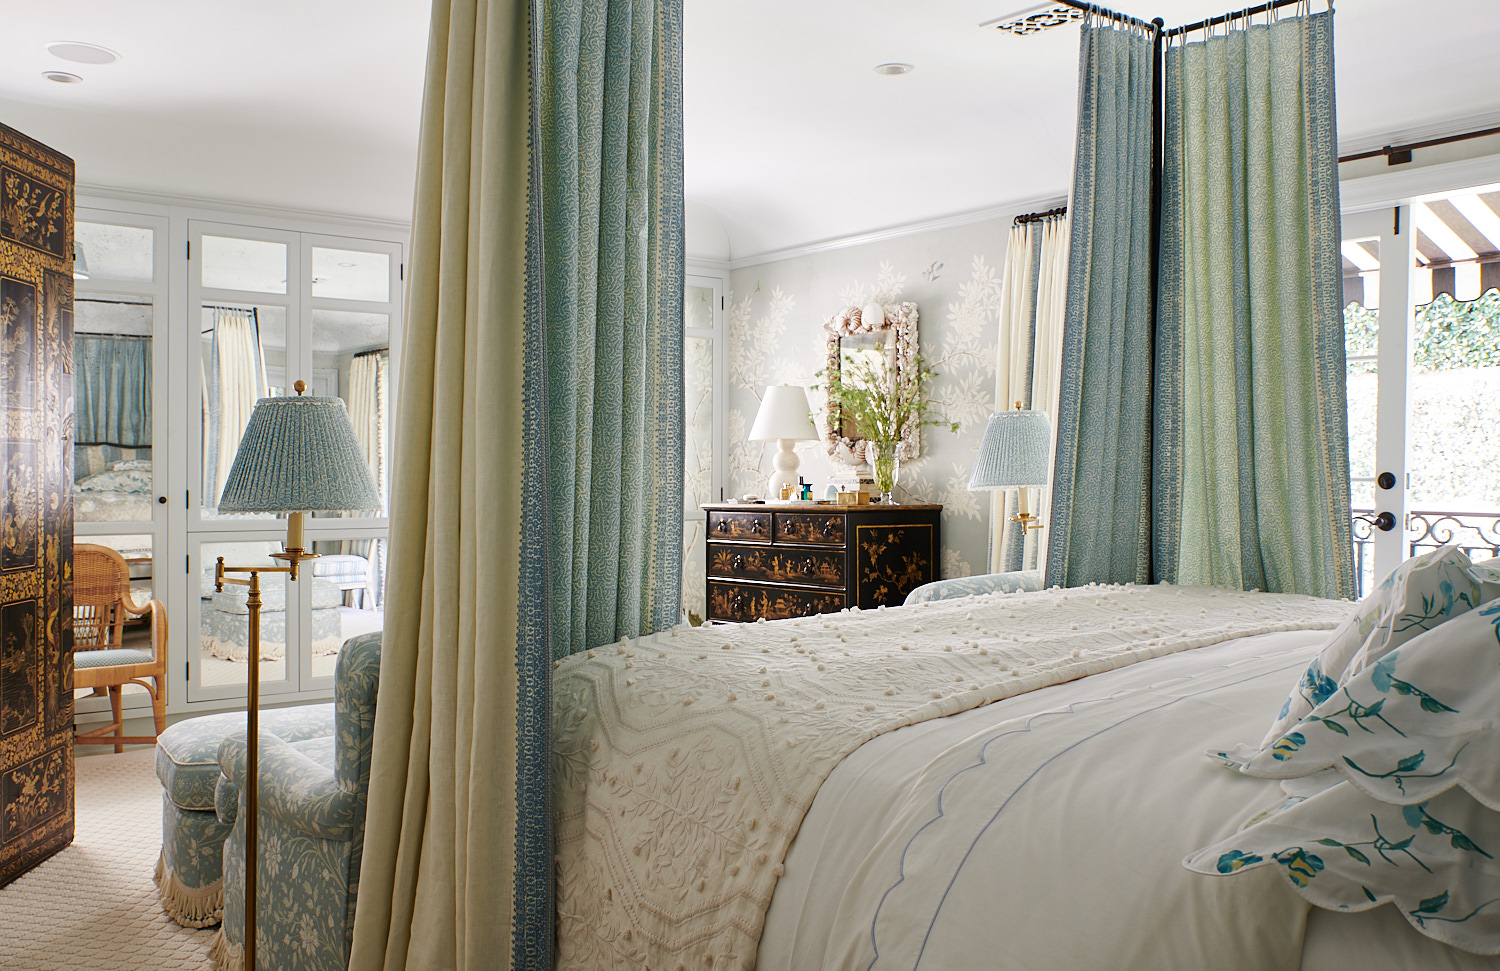 Custom bed drapes, floral pillow shams, floral upholstered club chair with accompanying ottoman